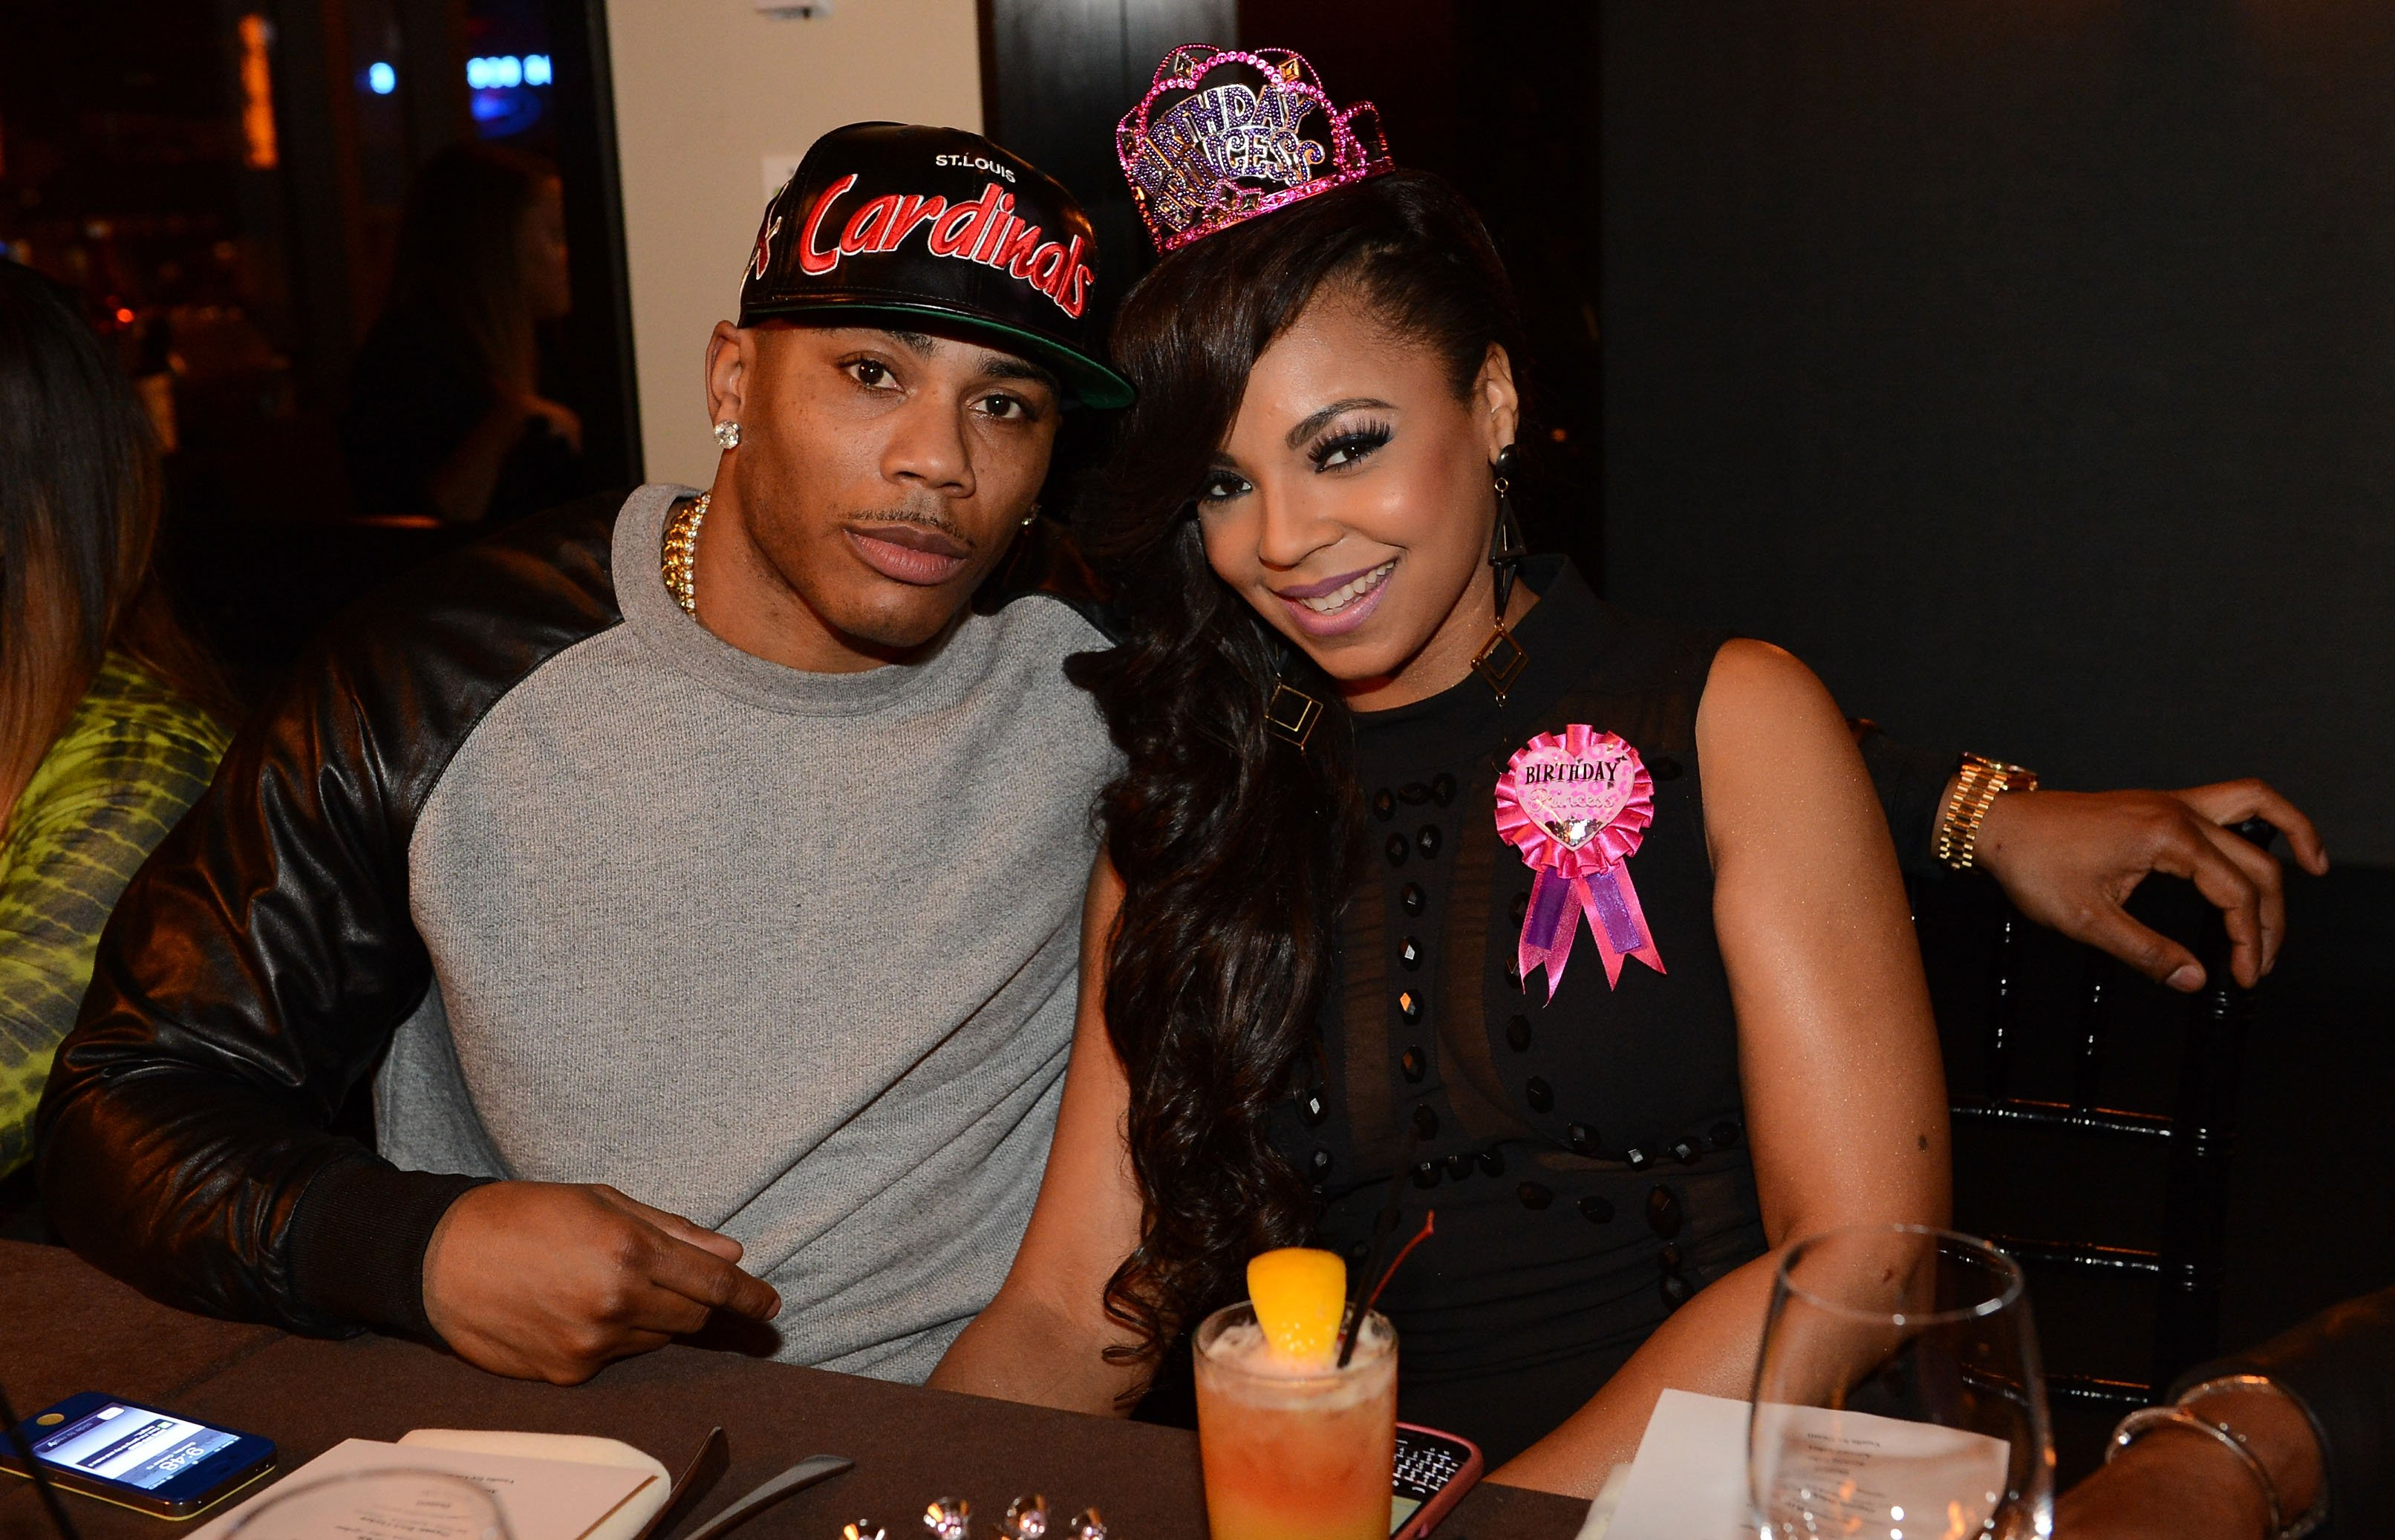 Nelly and ex, Ashanti during Ashanti's surprise birthday dinner on October 13, 2012 in Atlanta, Georgia | Photo: Getty Images